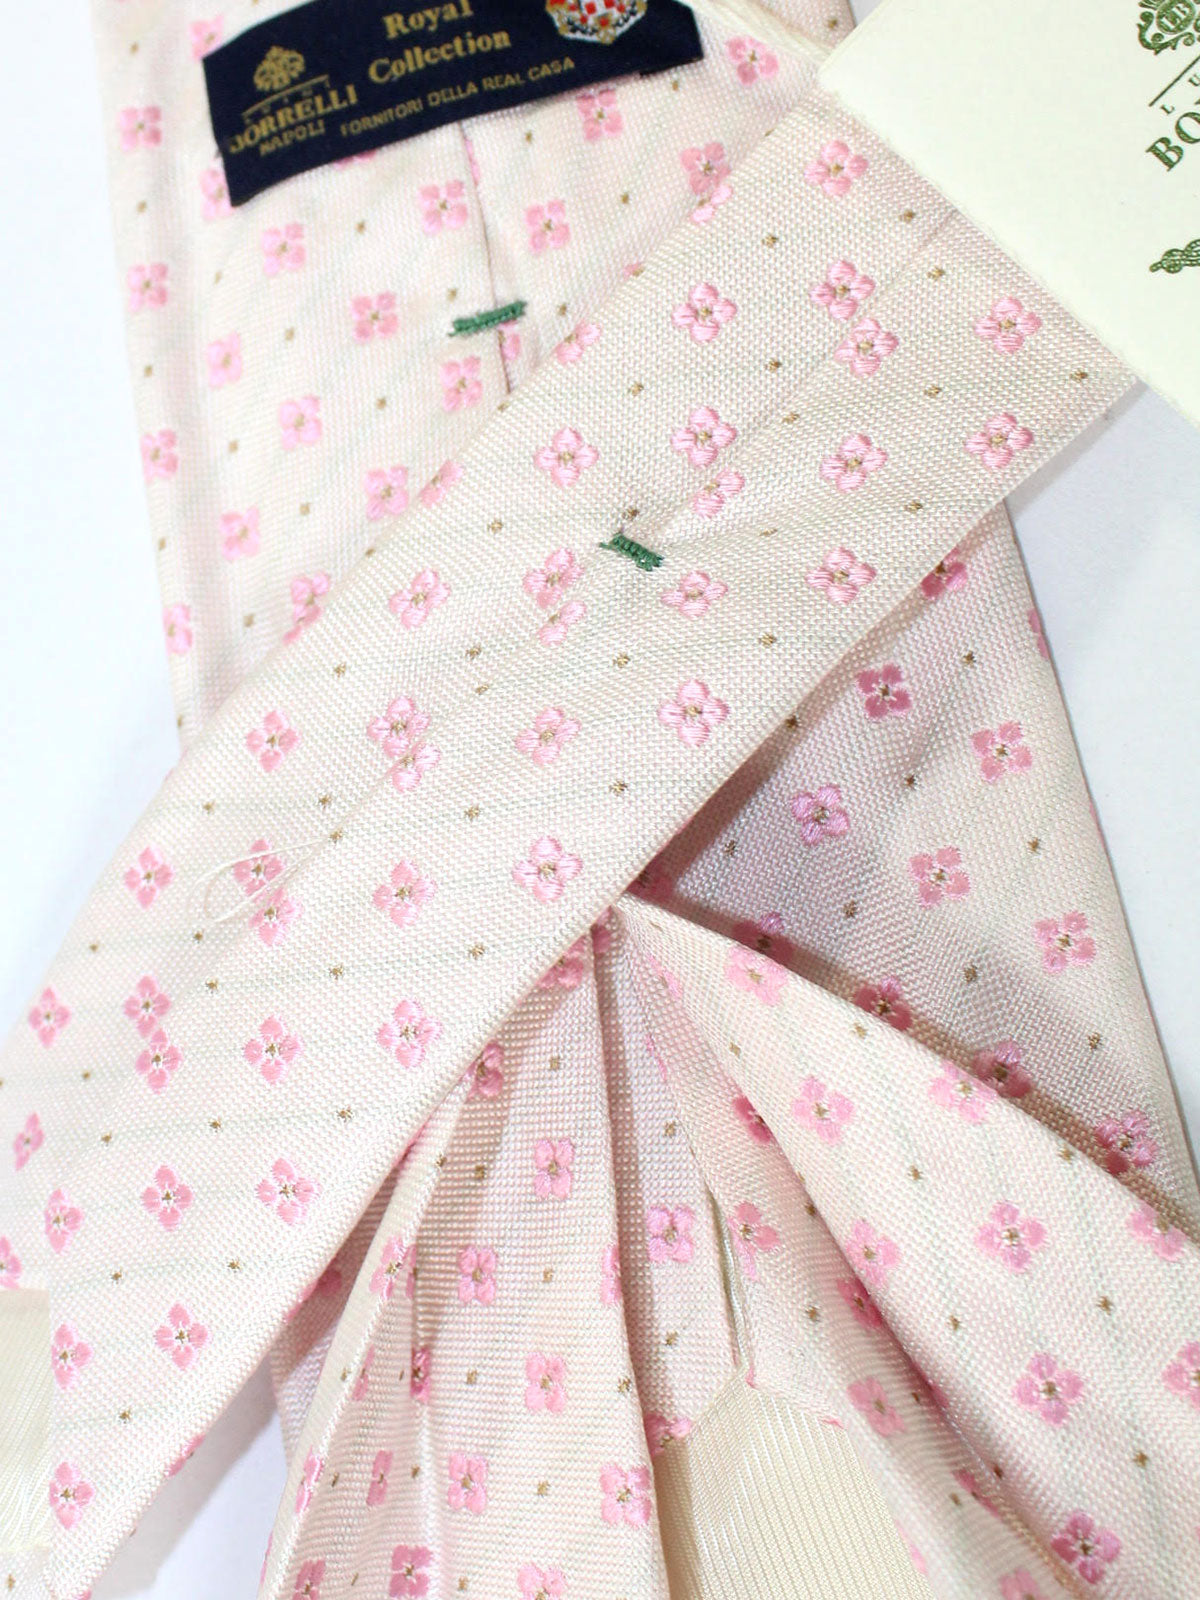 Luigi Borrelli 11 Fold Tie White Silver Pink Floral ROYAL COLLECTION - Elevenfold Necktie